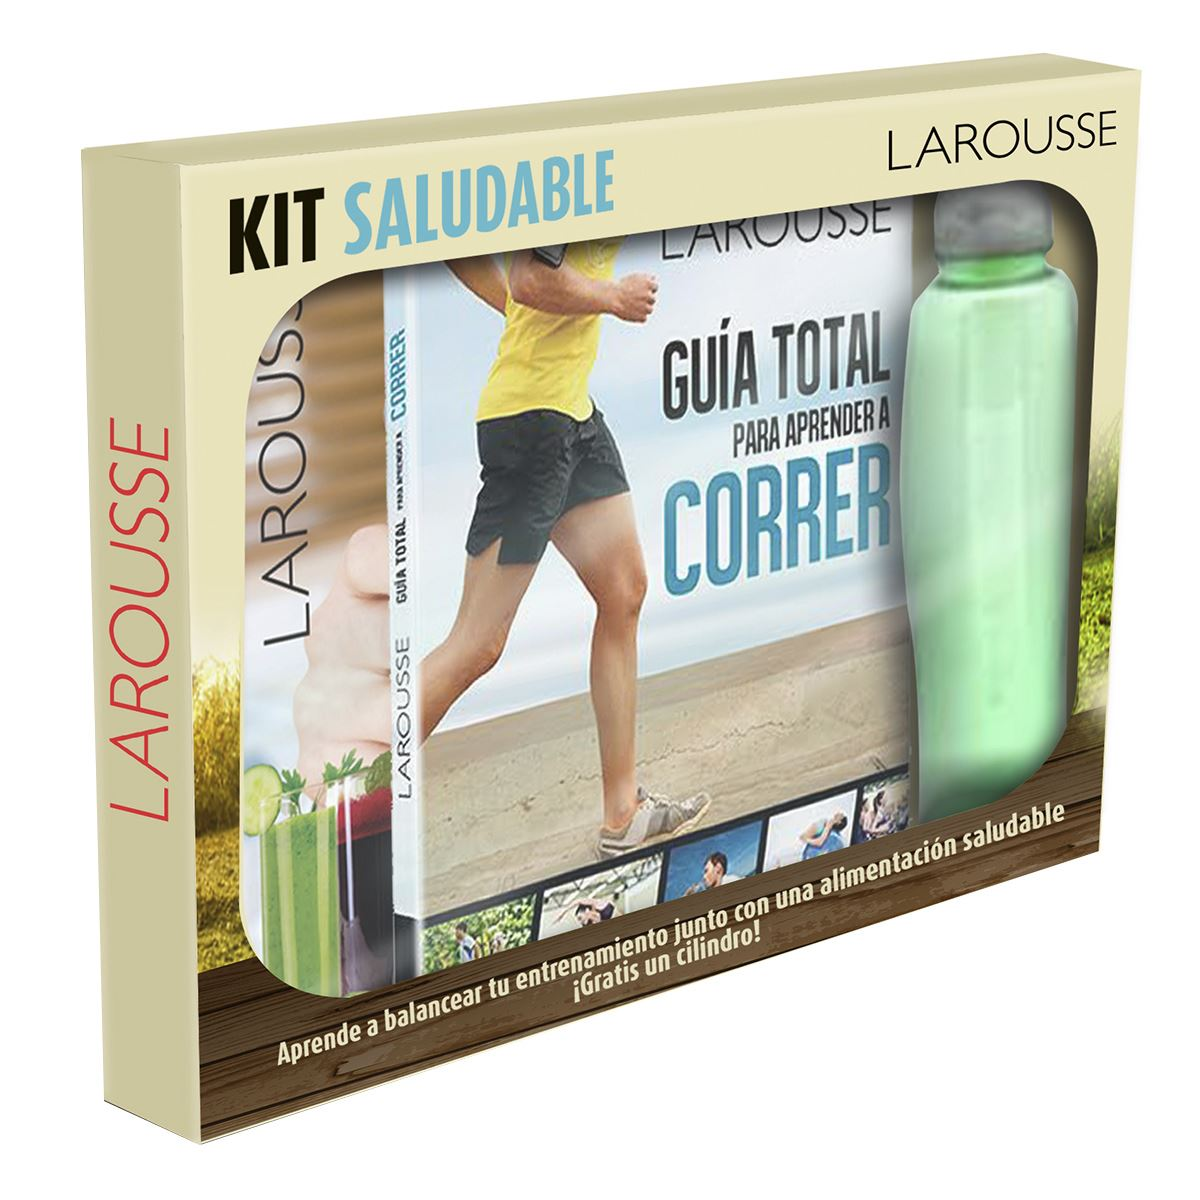 Kit Saludable con Cilindro